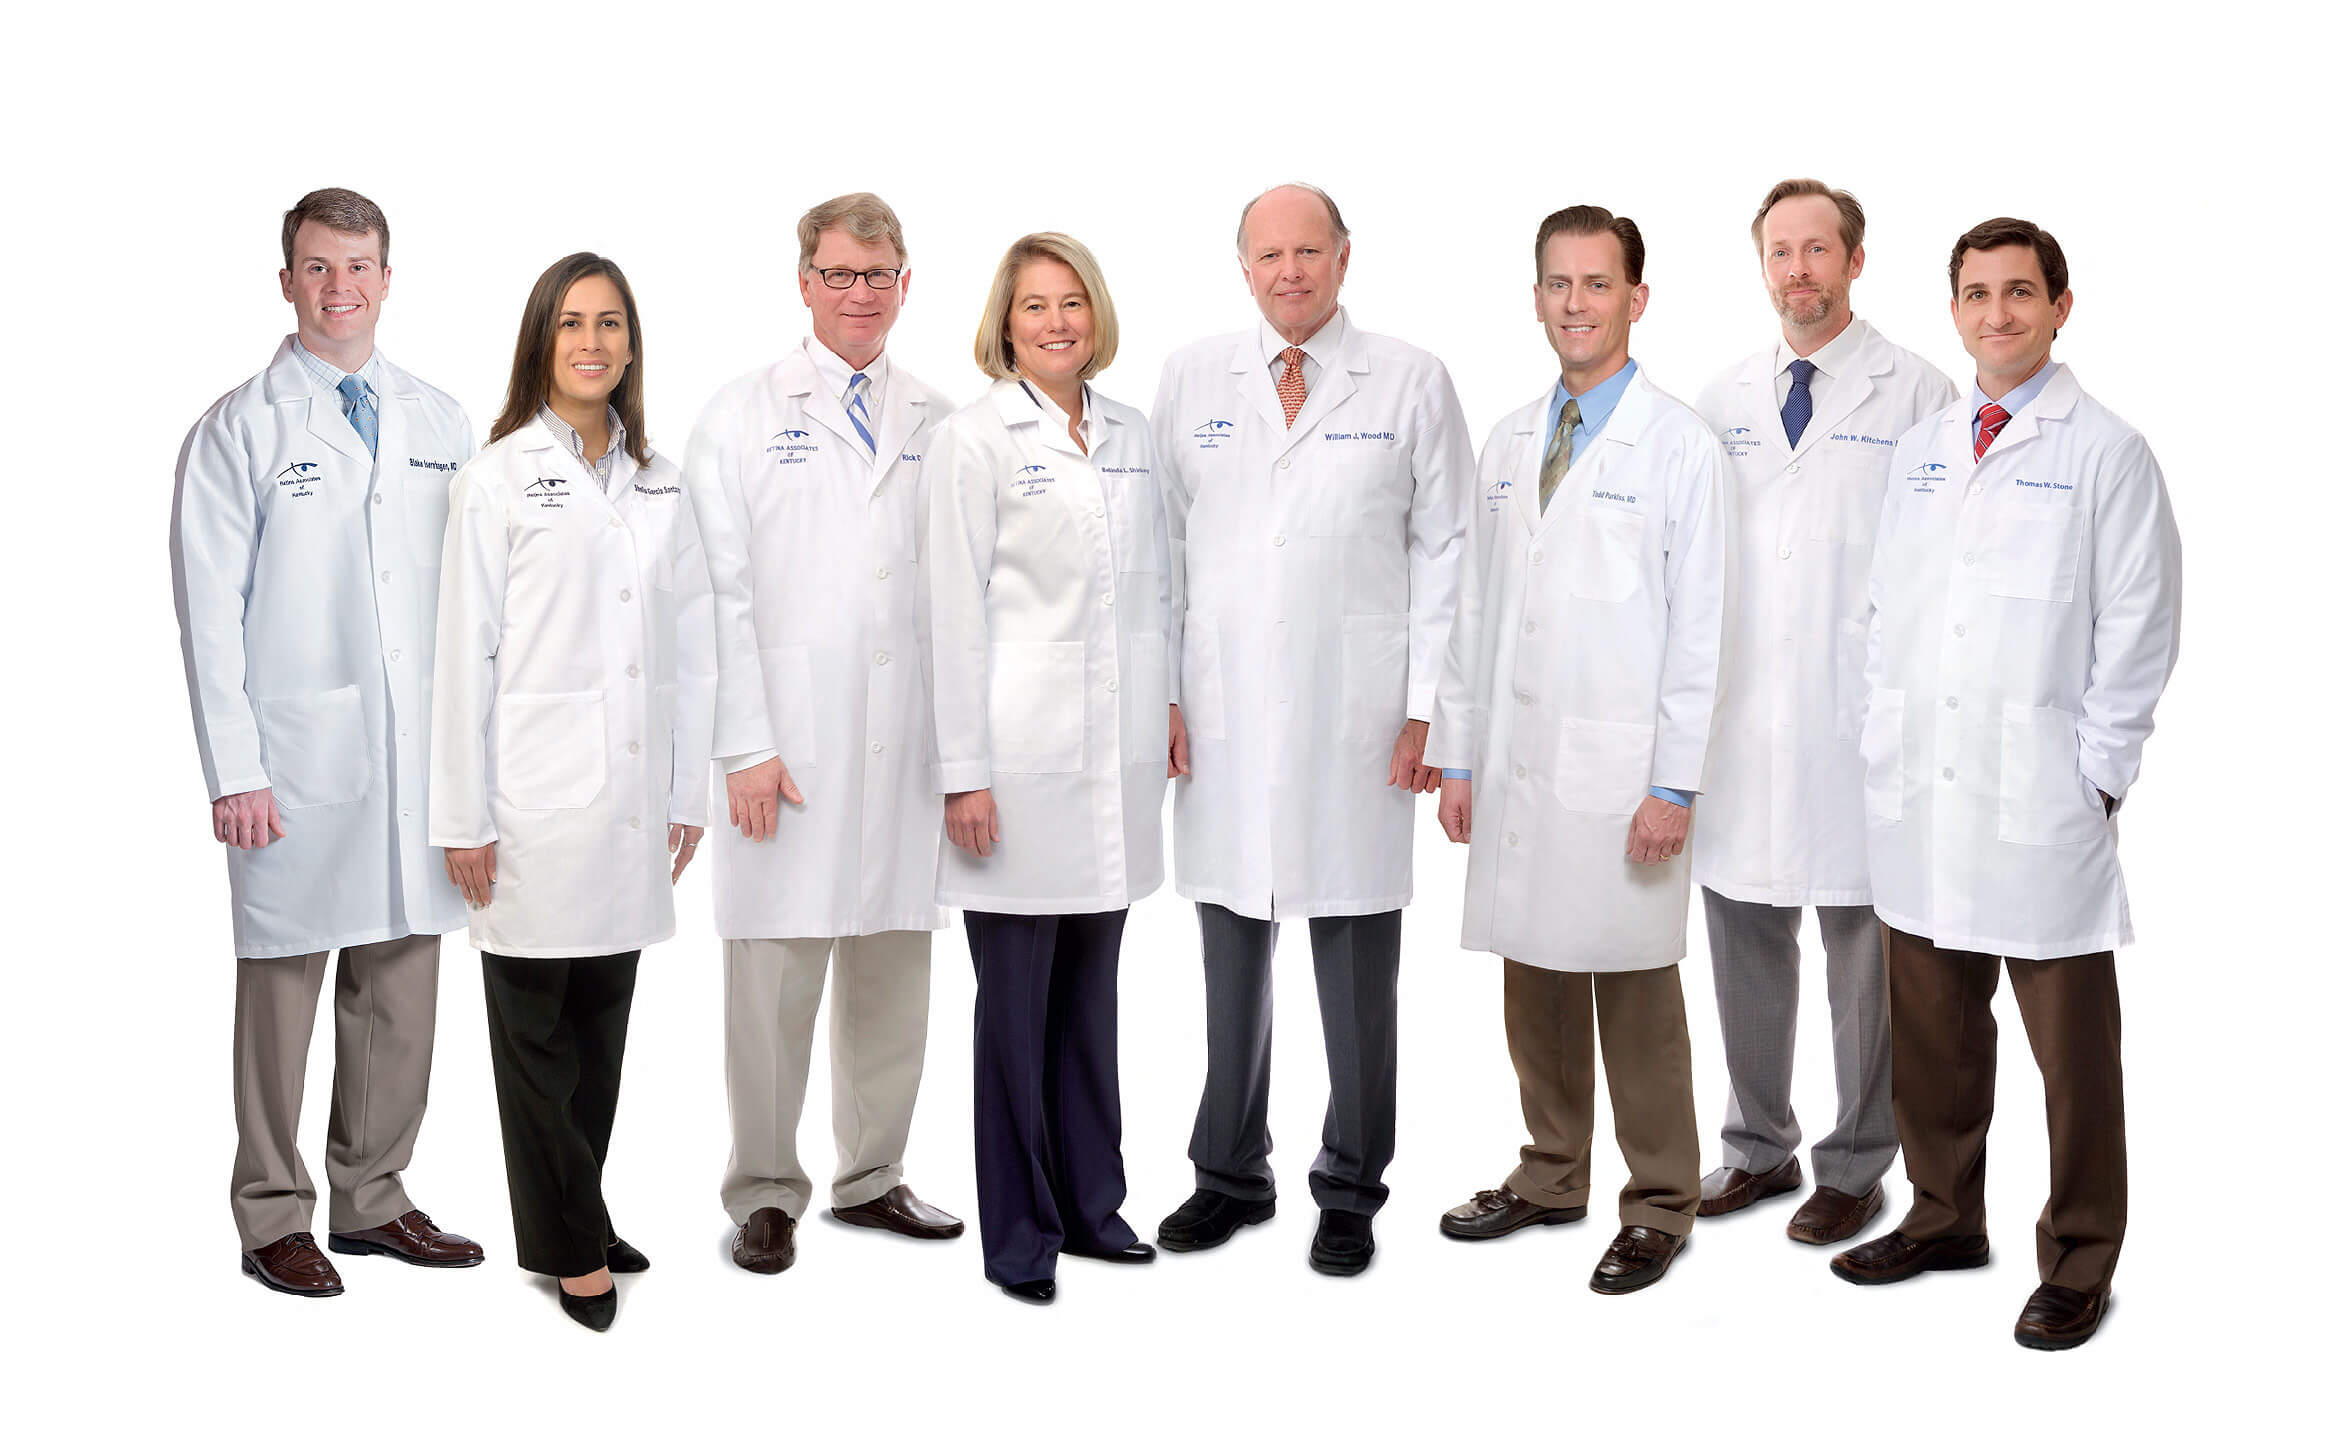 Group Shot Of Doctors